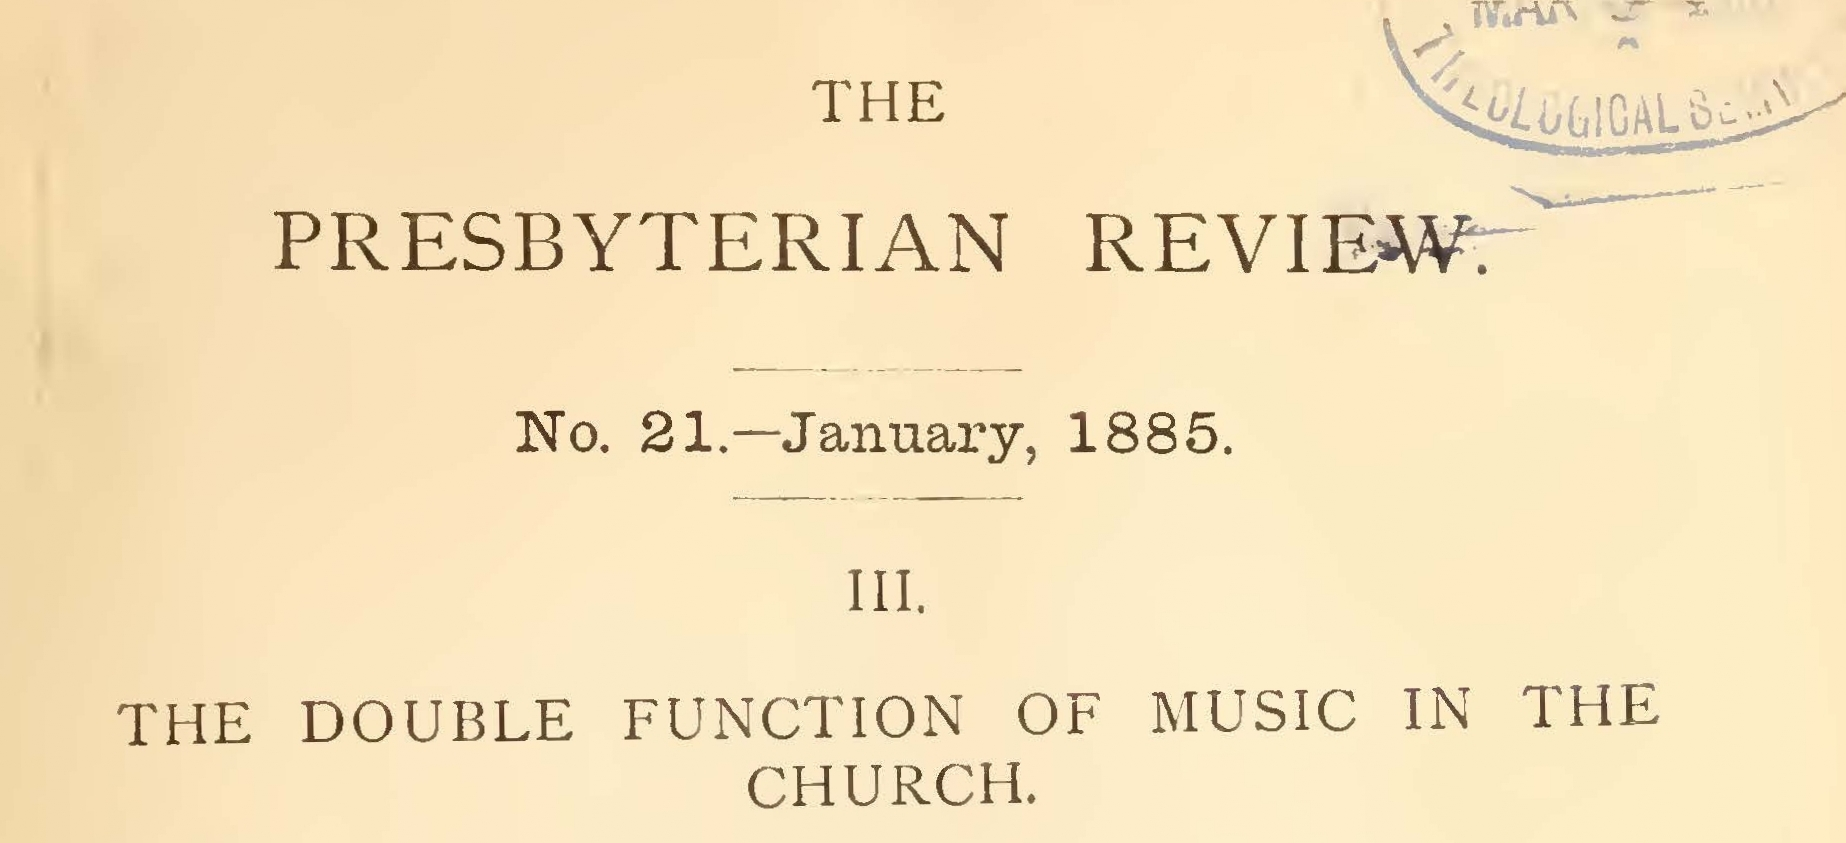 Bacon, Leonard Woolsey, The Double Function of Music in the Church Title Page.jpg